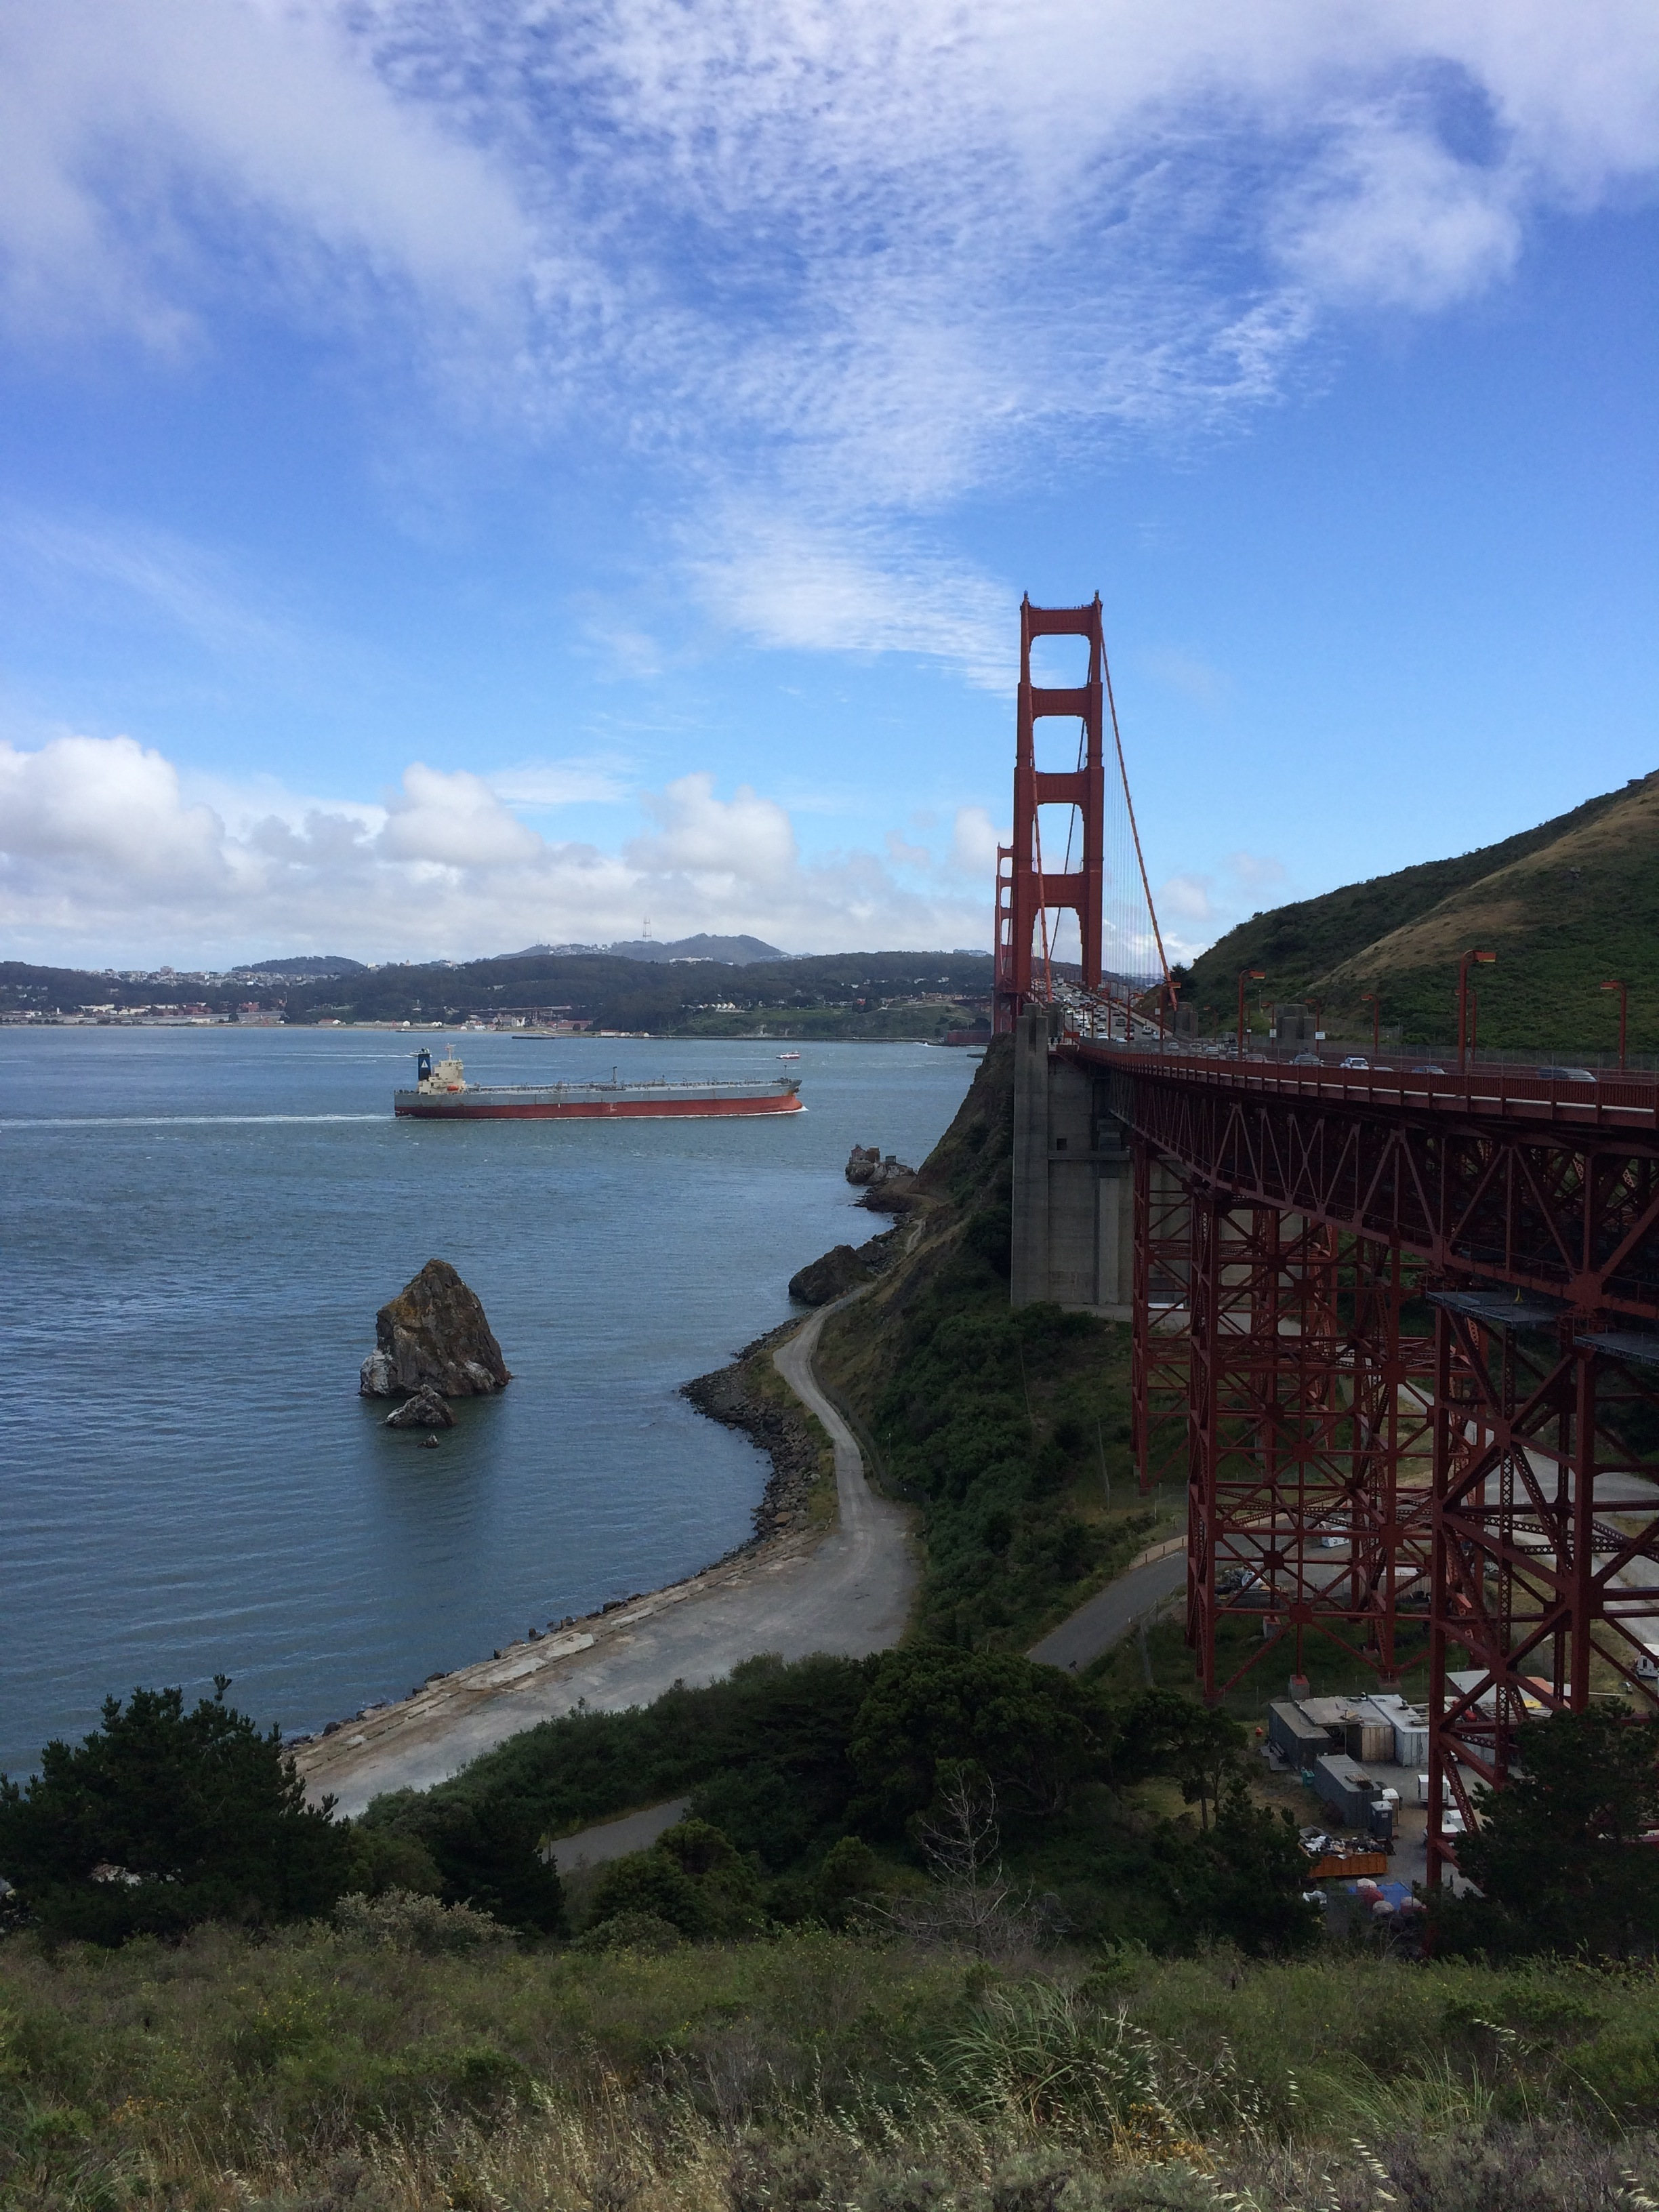 The Golden Gate Bridge. View from North end.